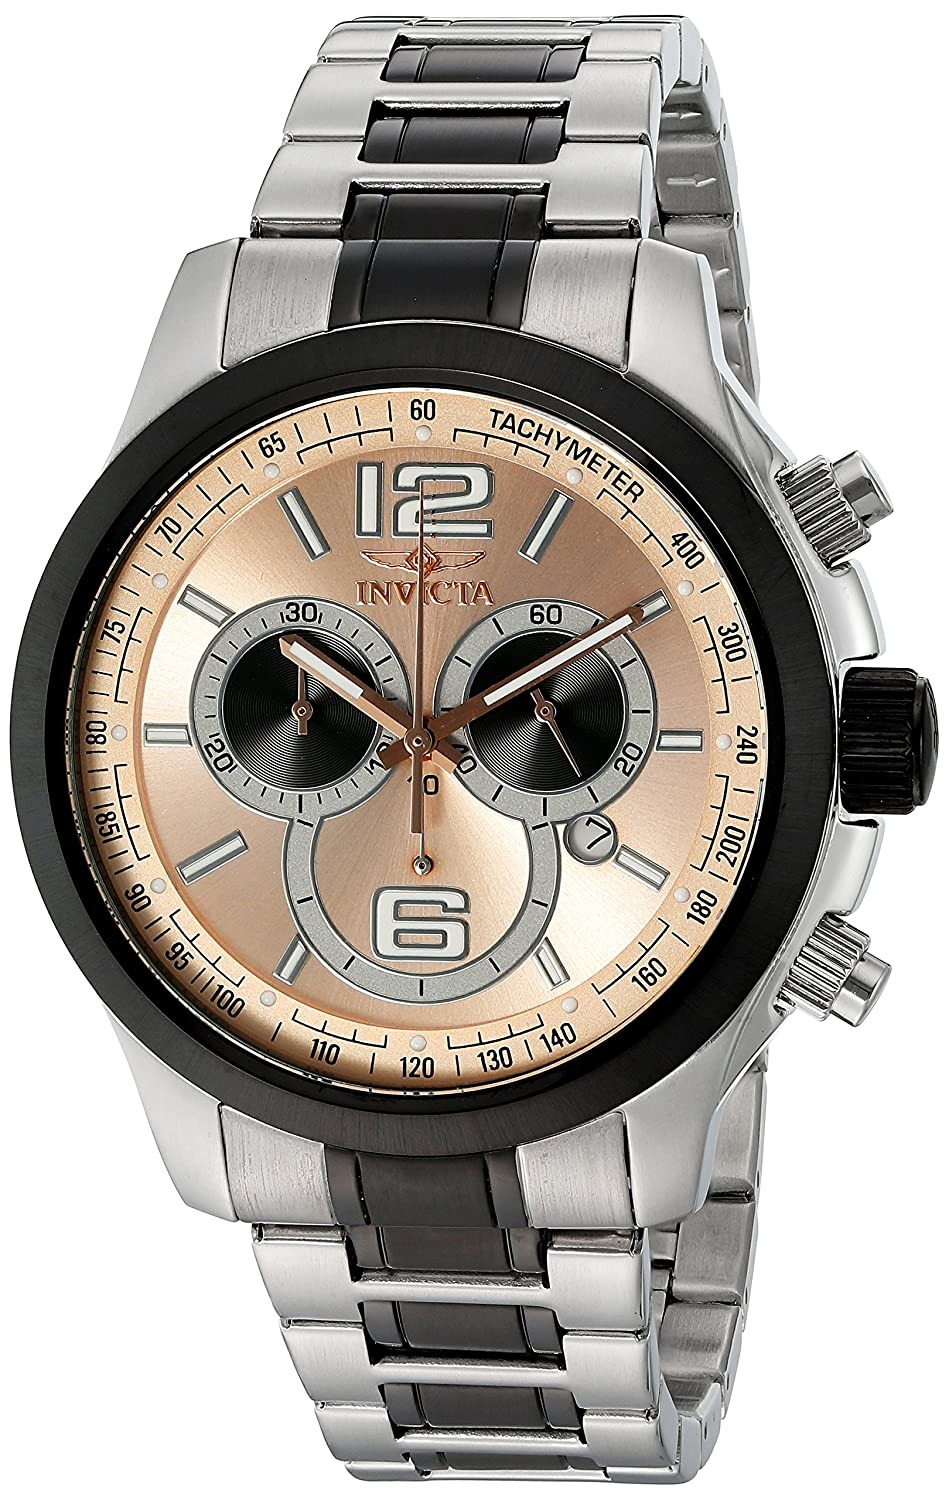 Invicta Men s 0079 II Collection Chronograph Two-Tone Stainless Steel Watch